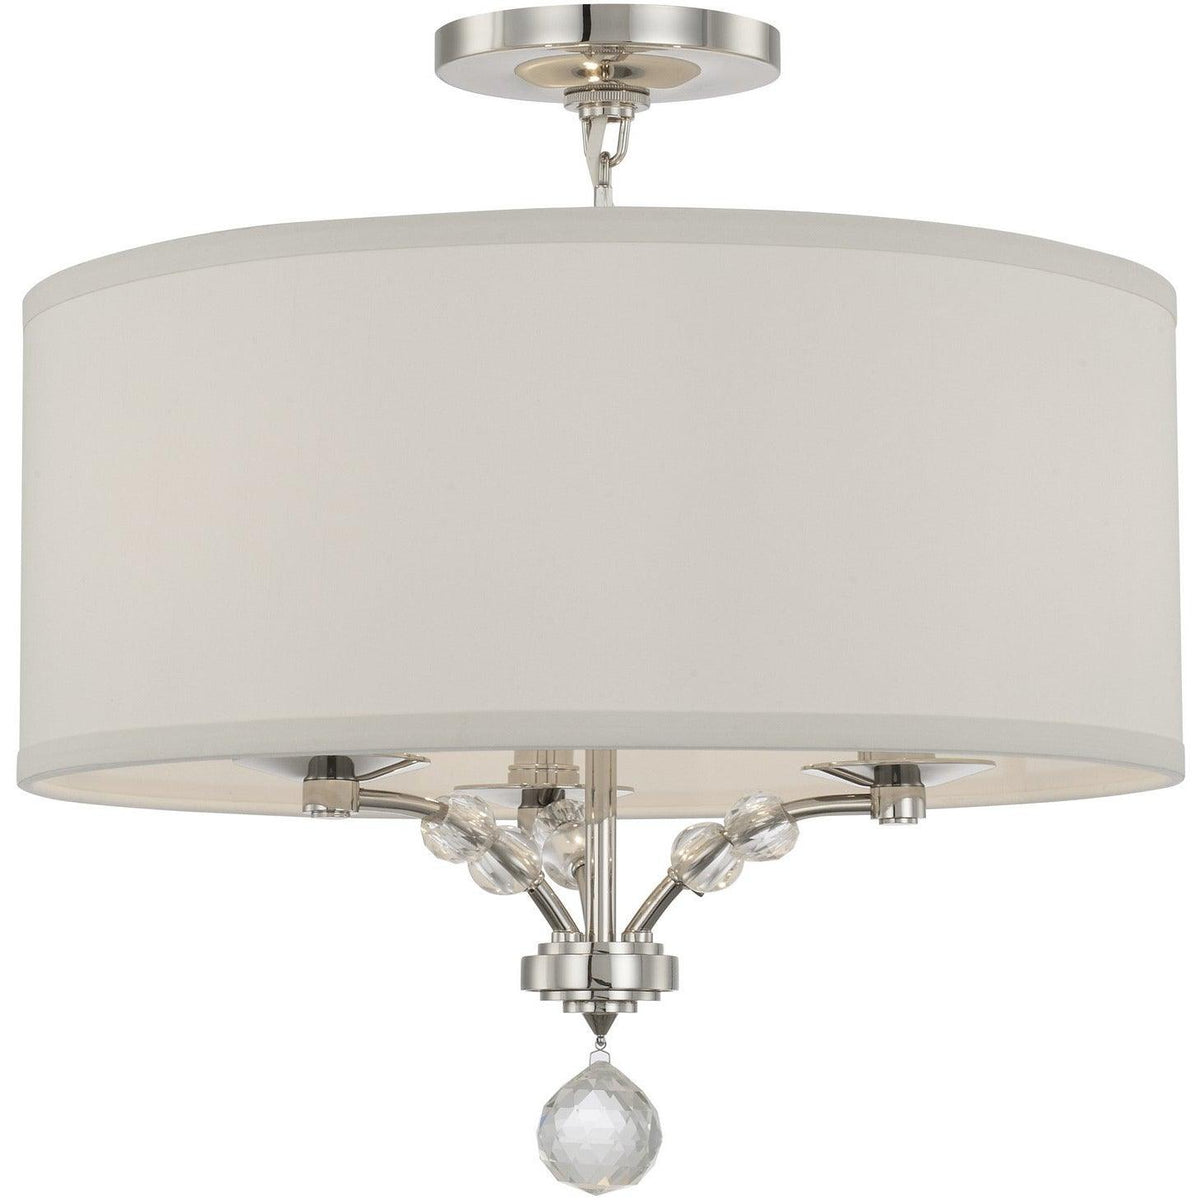 Crystorama - 8005-PN_CEILING - Three Light Ceiling Mount - Mirage - Polished Nickel